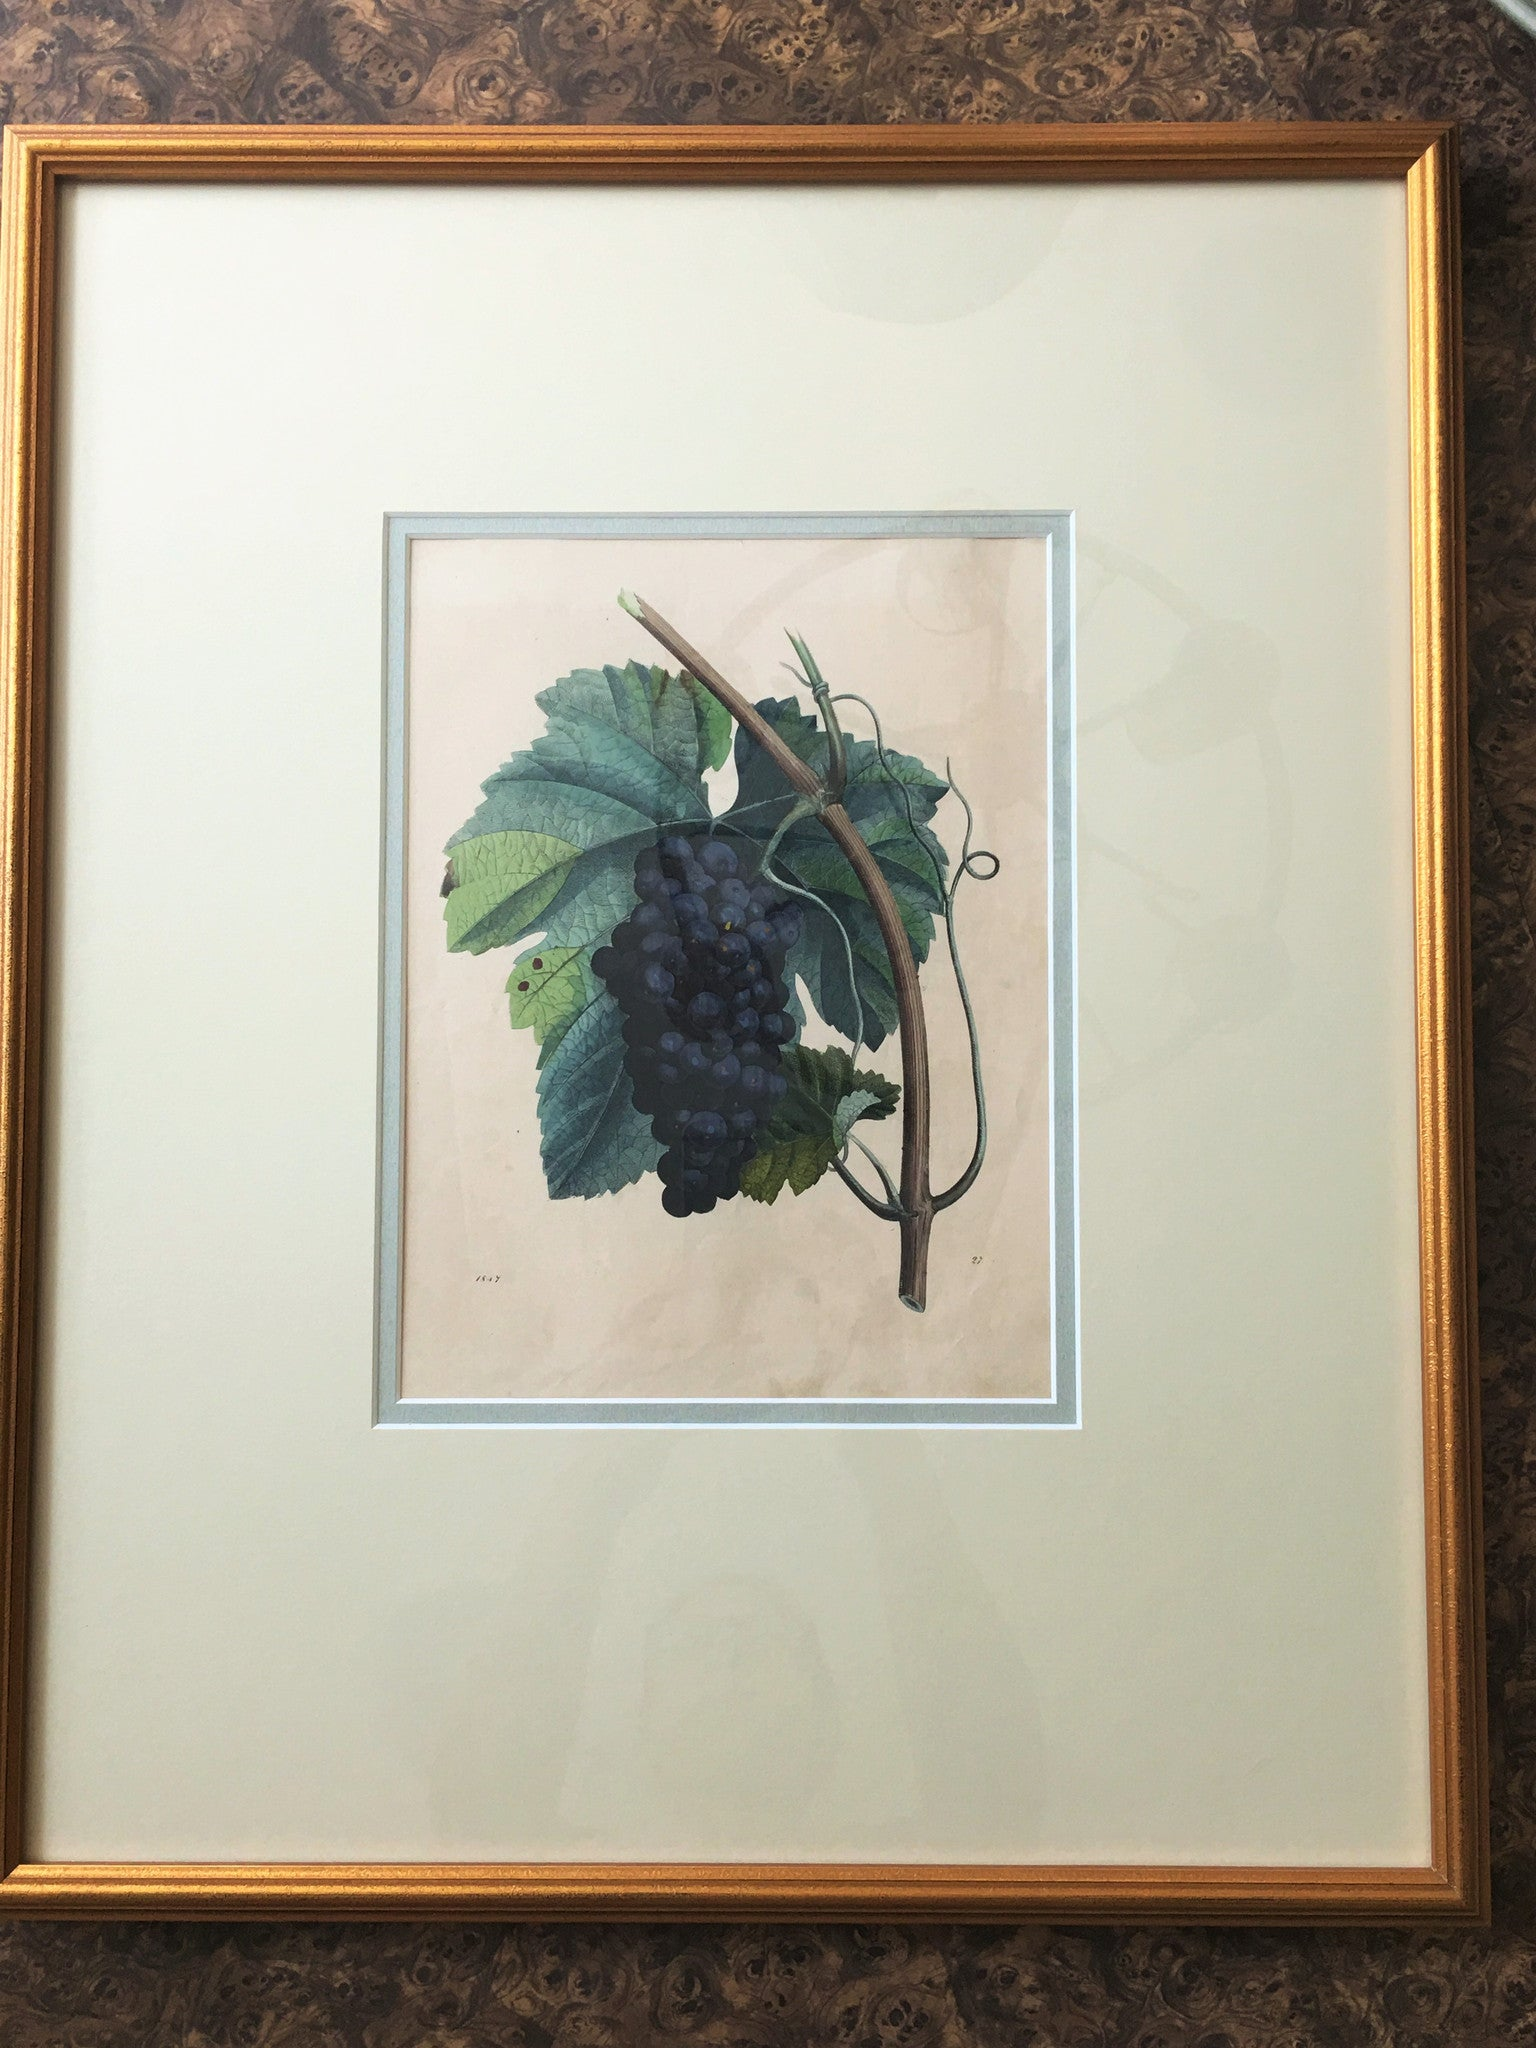 German Hand Colored Fruit Engraving, Number II, circa 1847